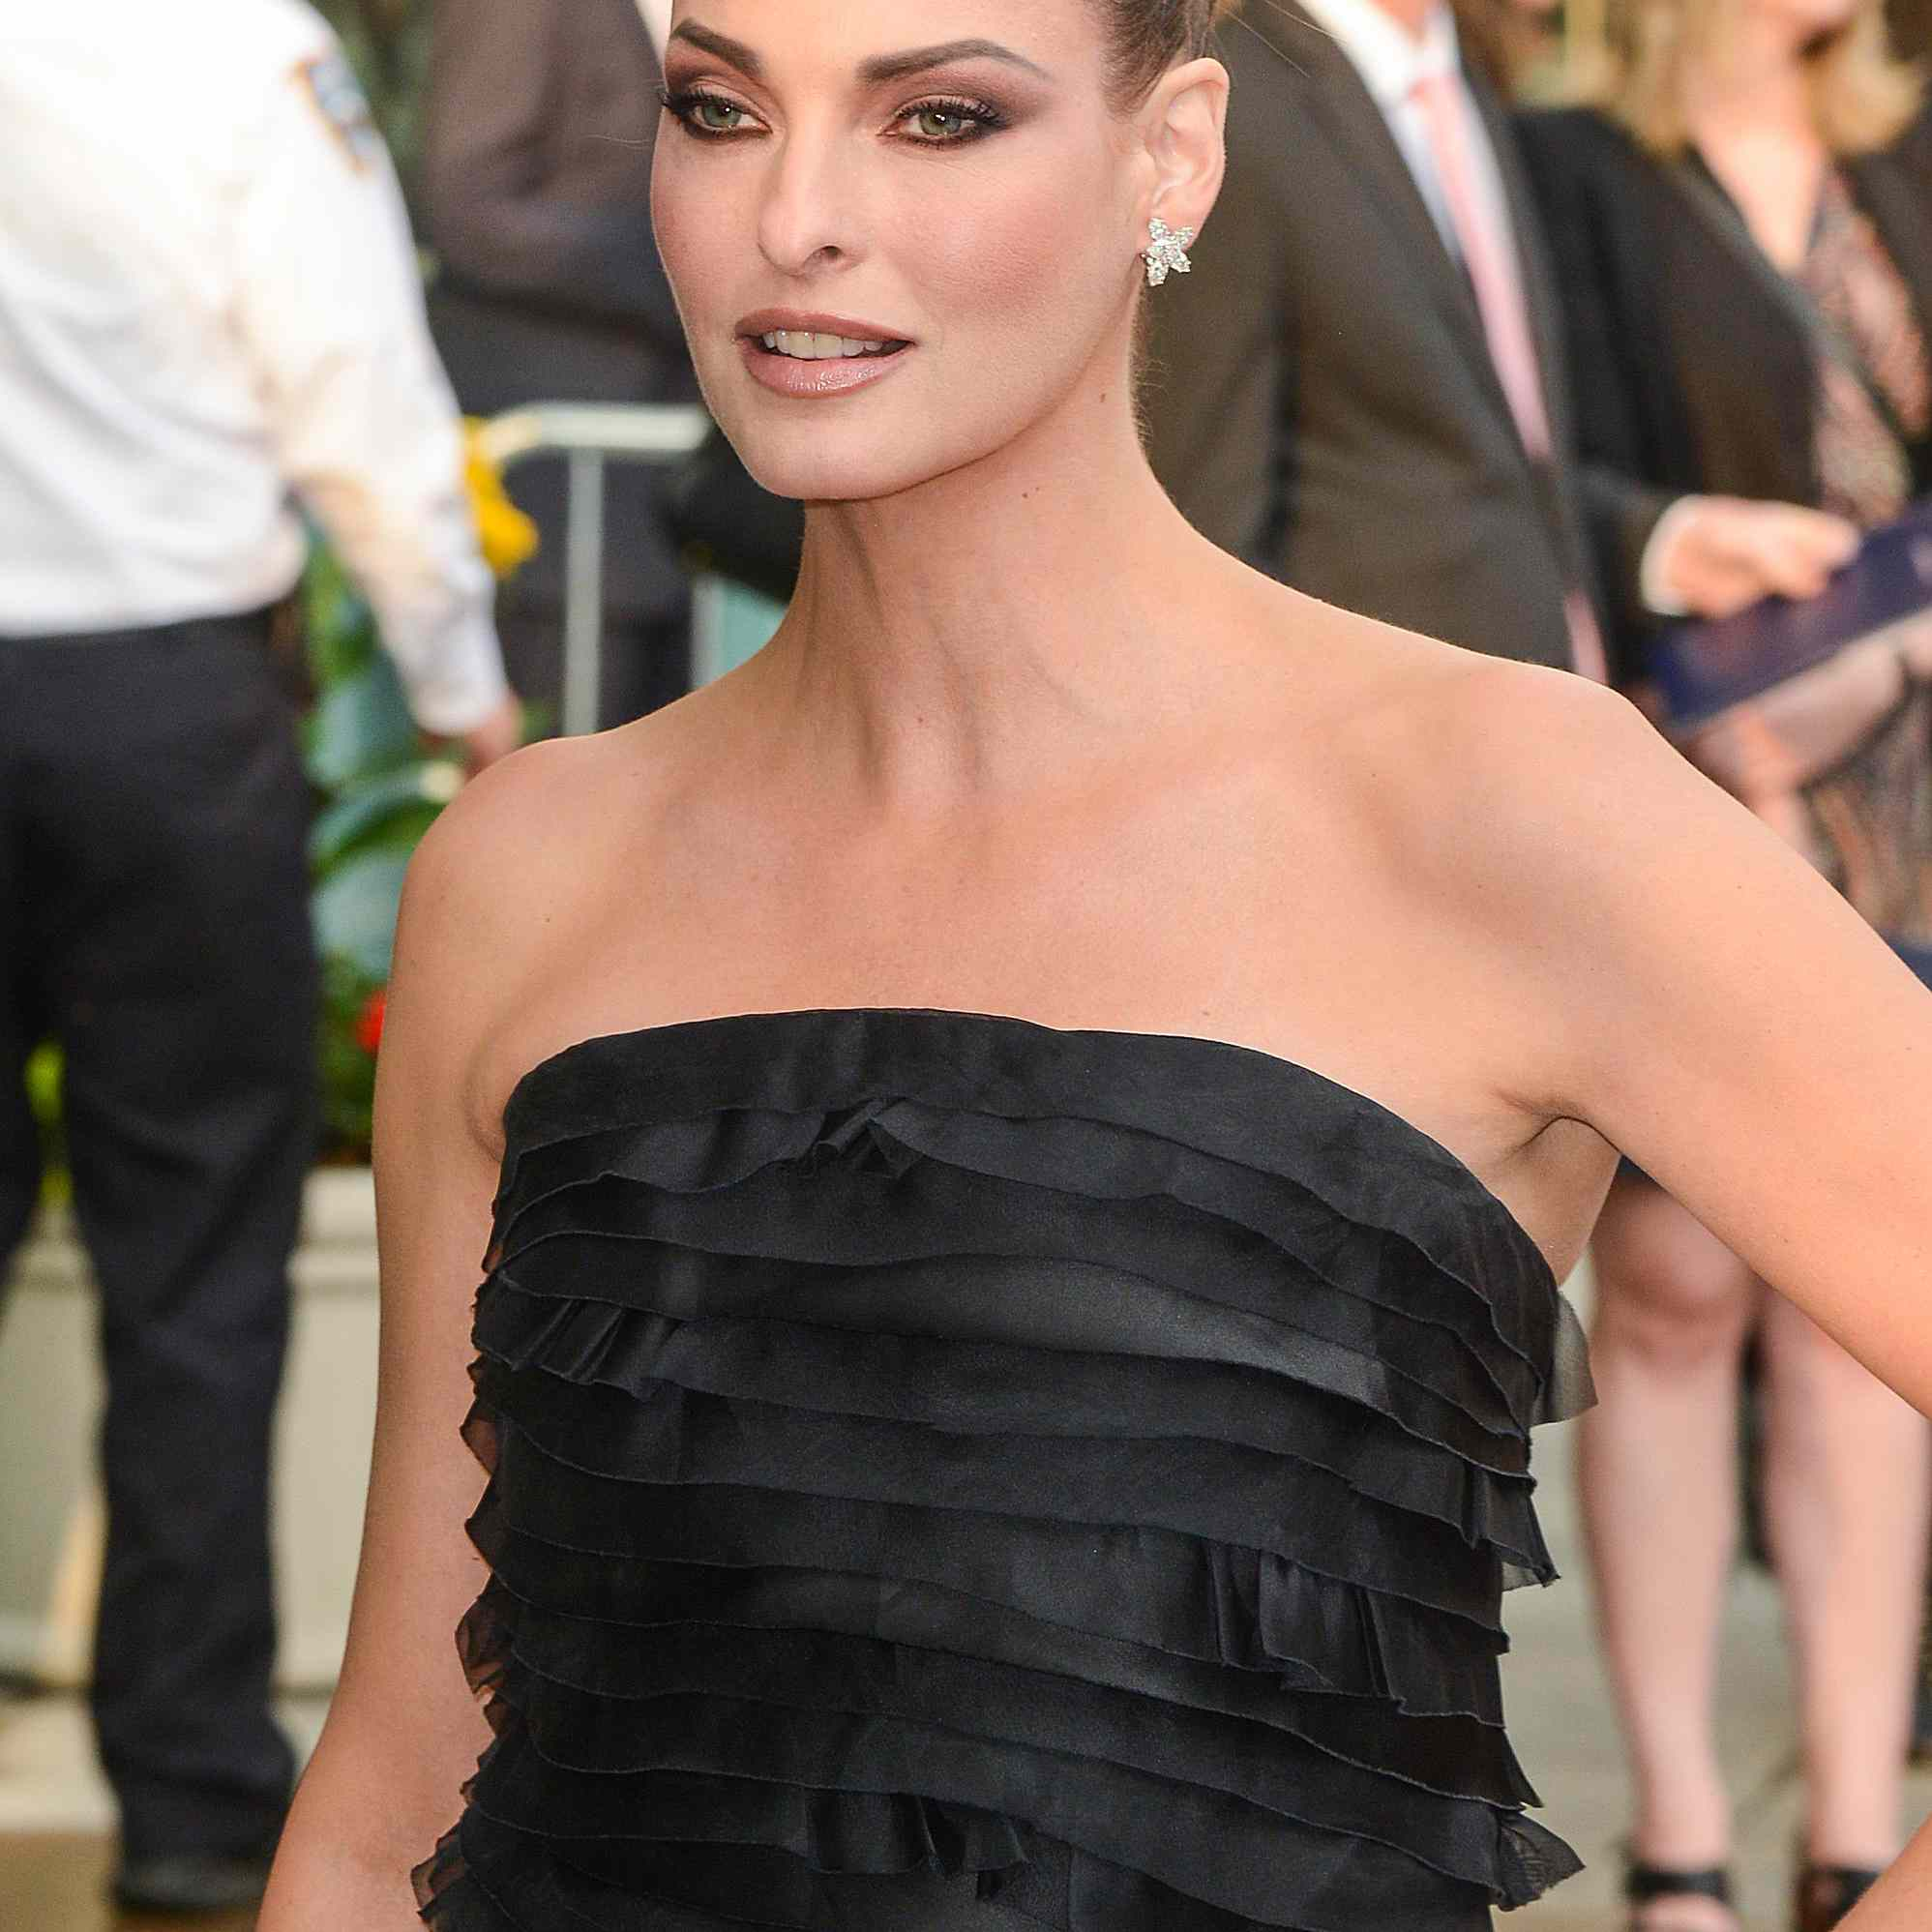 Model Linda Evangelista enters the 2013 CFDA Fashion Awards on June 3, 2013 in New York, United States.